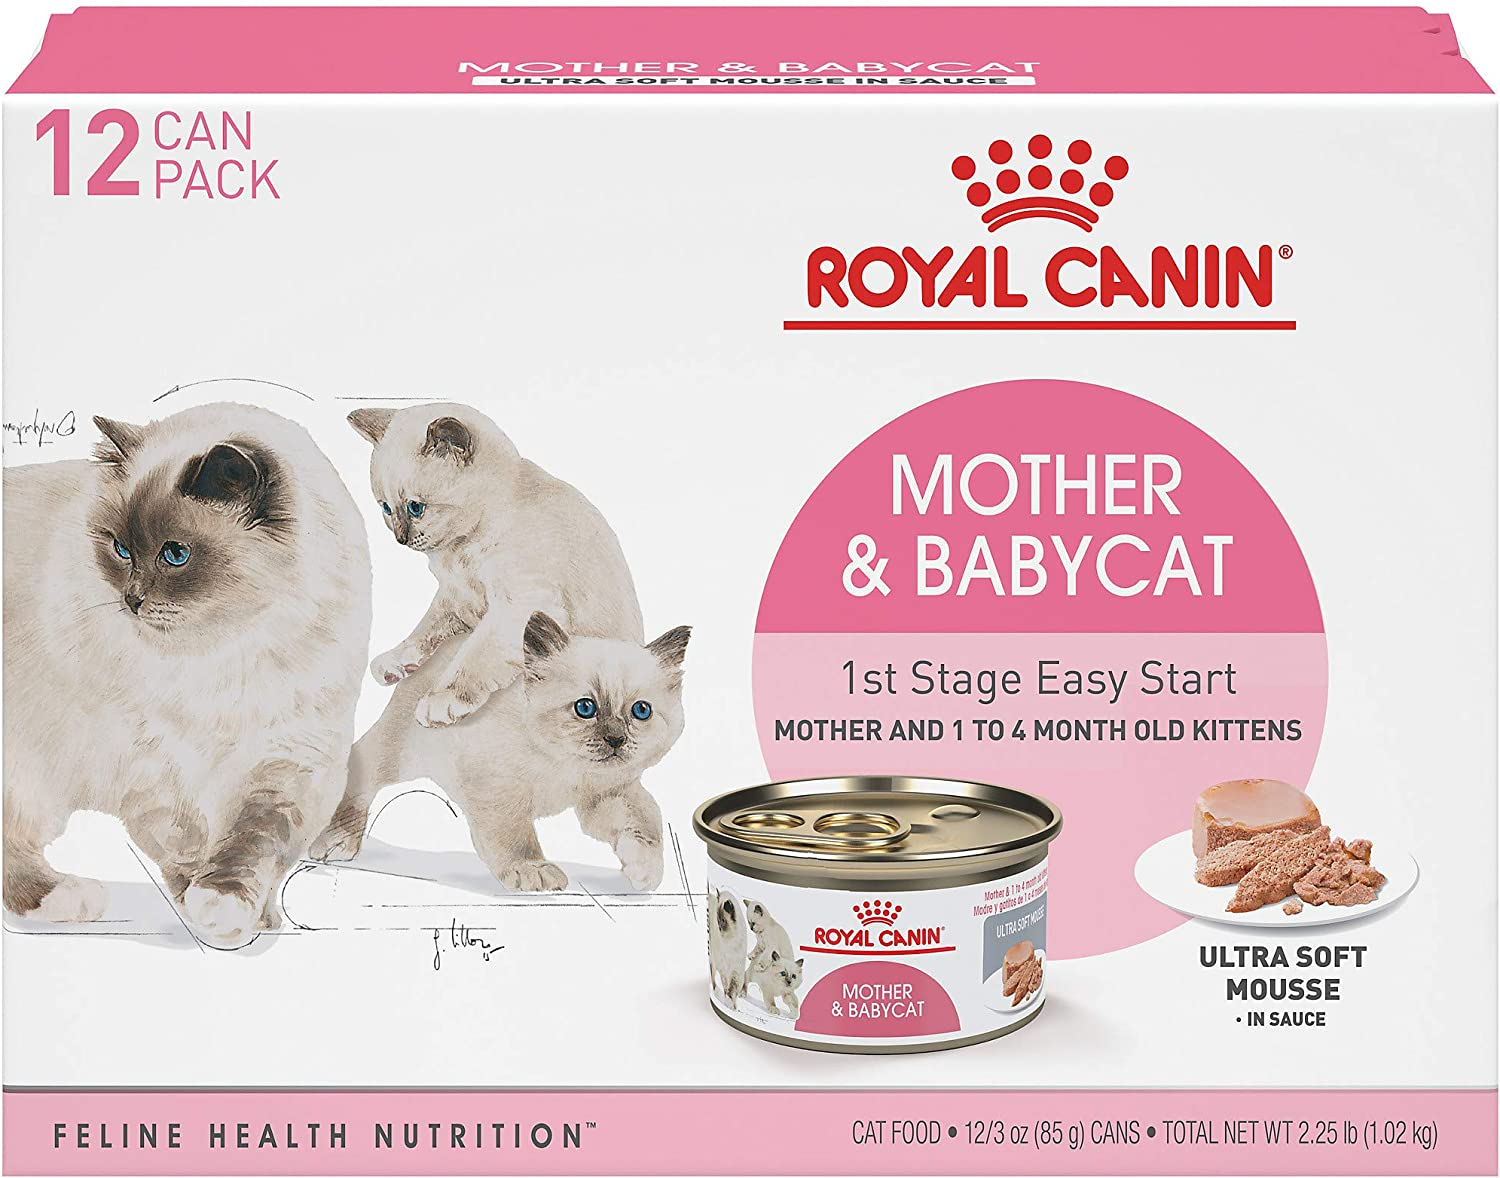 Royal Canin Mother & Babycat Ultra-Soft Mousse in Sauce Wet Cat Food for New Kittens and Nursing or Pregnant Mother Cats, 3 Ounce Can